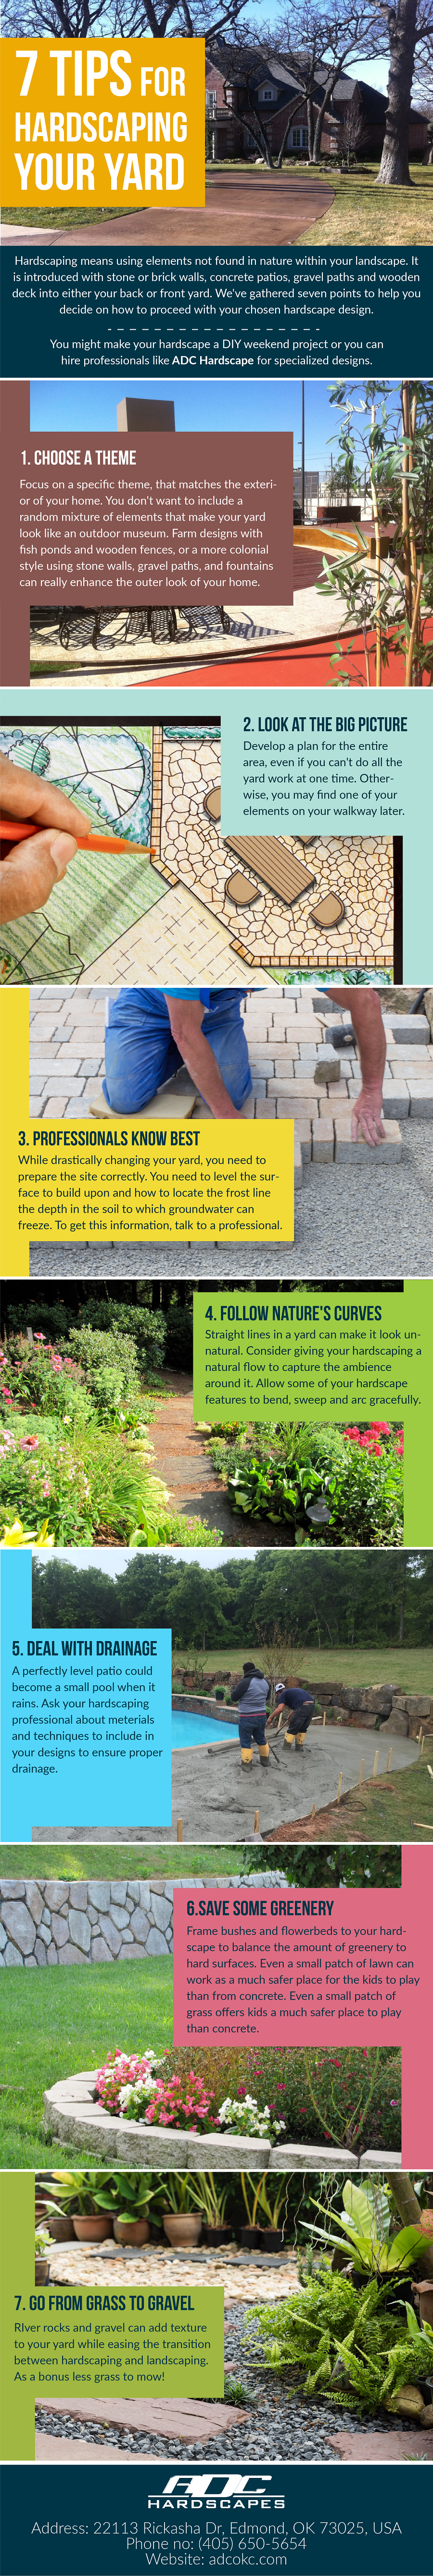 7 Tips For Hardscaping Your Yard Adc Hardscapes Retaining Wall Contractor In Oklahoma City Edmond Ok Hardscape Yard Infographic